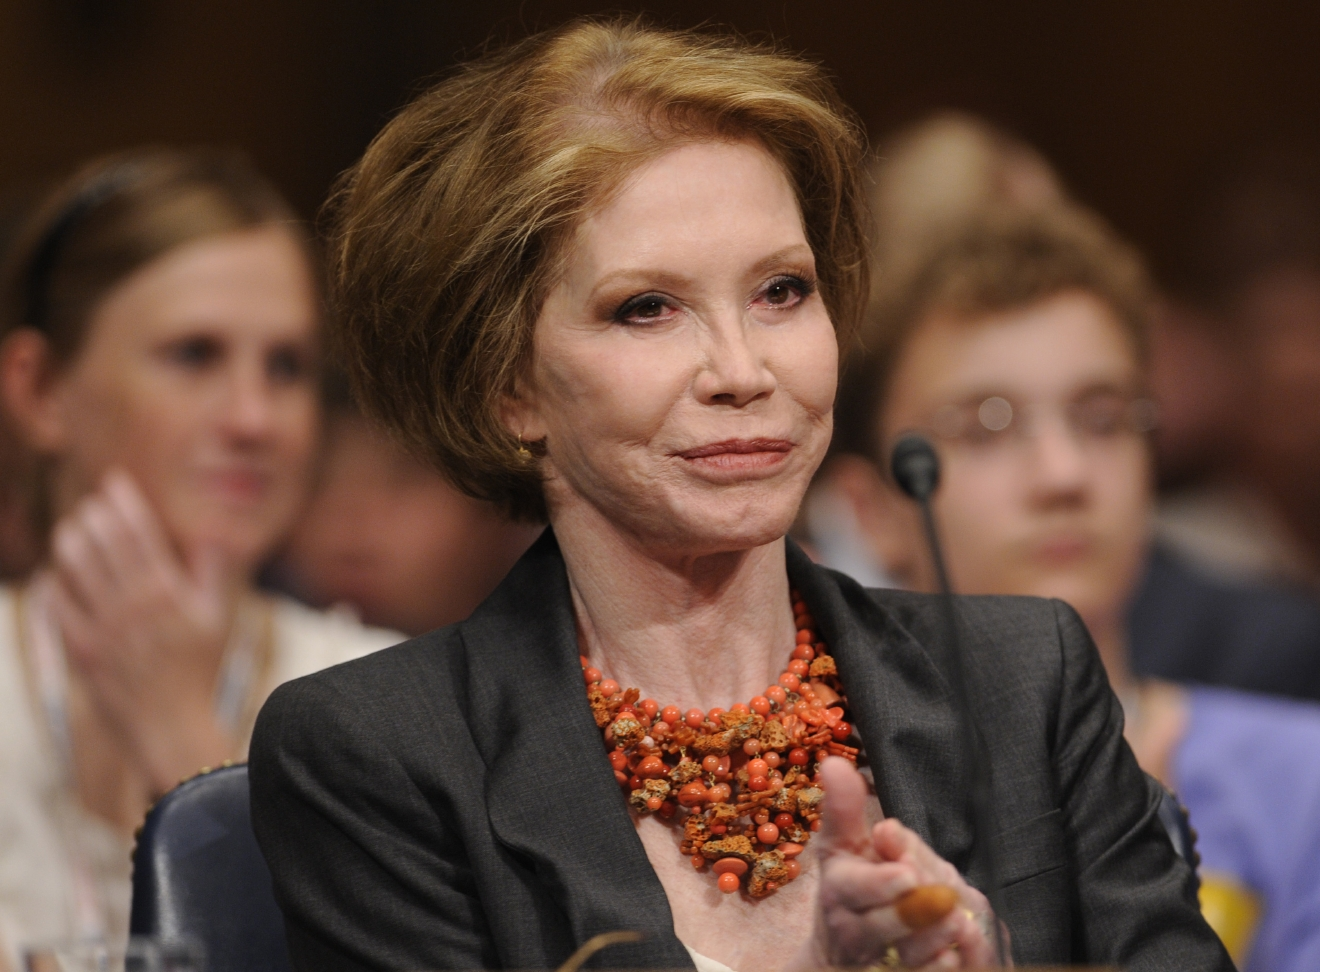 FILE - This June 24, 2009 file photo shows actress Mary Tyler Moore before the Senate Homeland Security and Governmental Affairs Committee hearing on Type 1 Diabetes Research on Capitol Hill in Washington. Moore died Wednesday, Jan. 25, 2017, at age 80. (AP Photo/Susan Walsh, File)